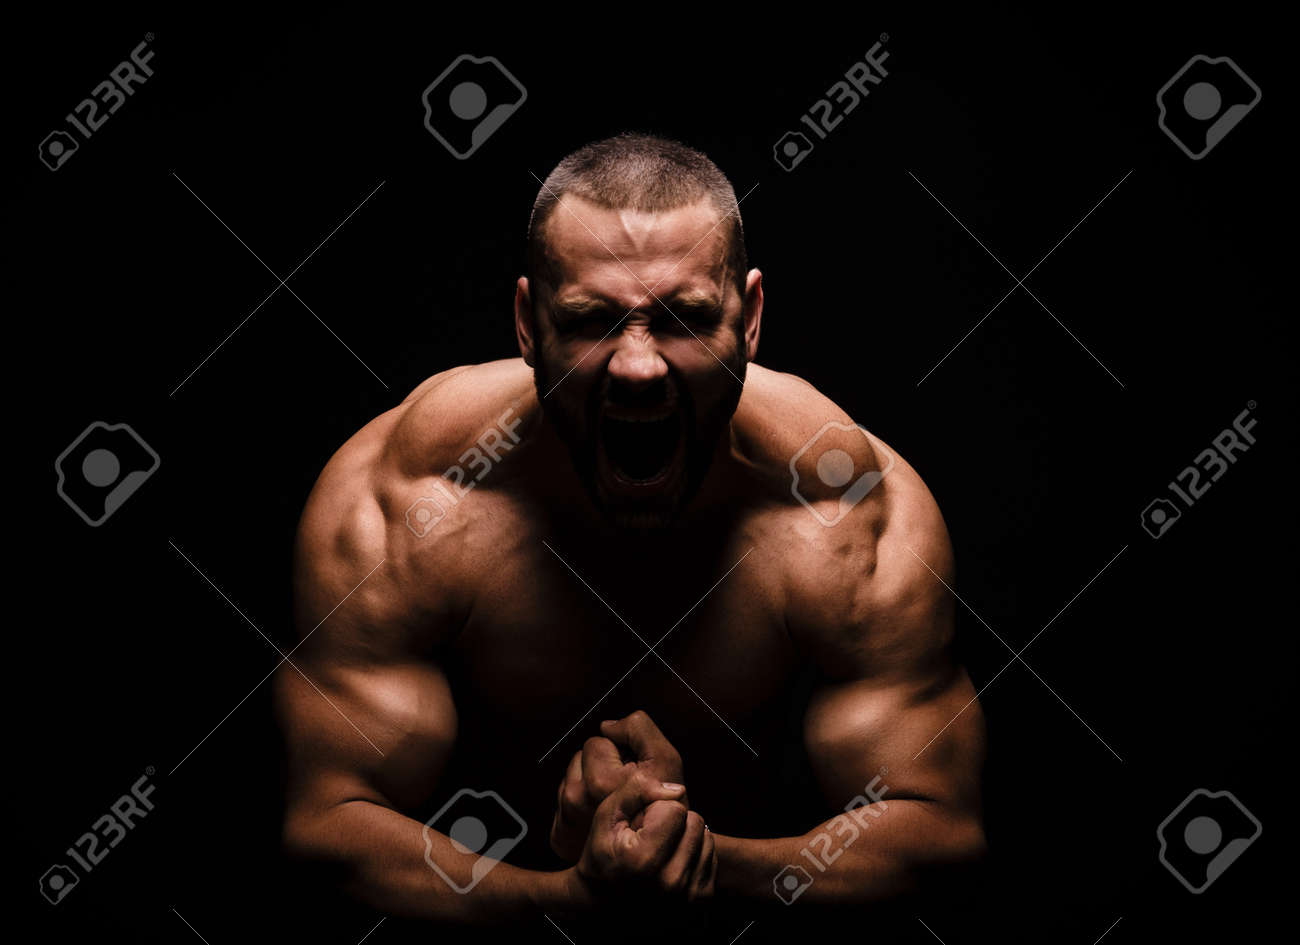 Close Up Of A Happy Fitness Model Man With A Muscular Body On